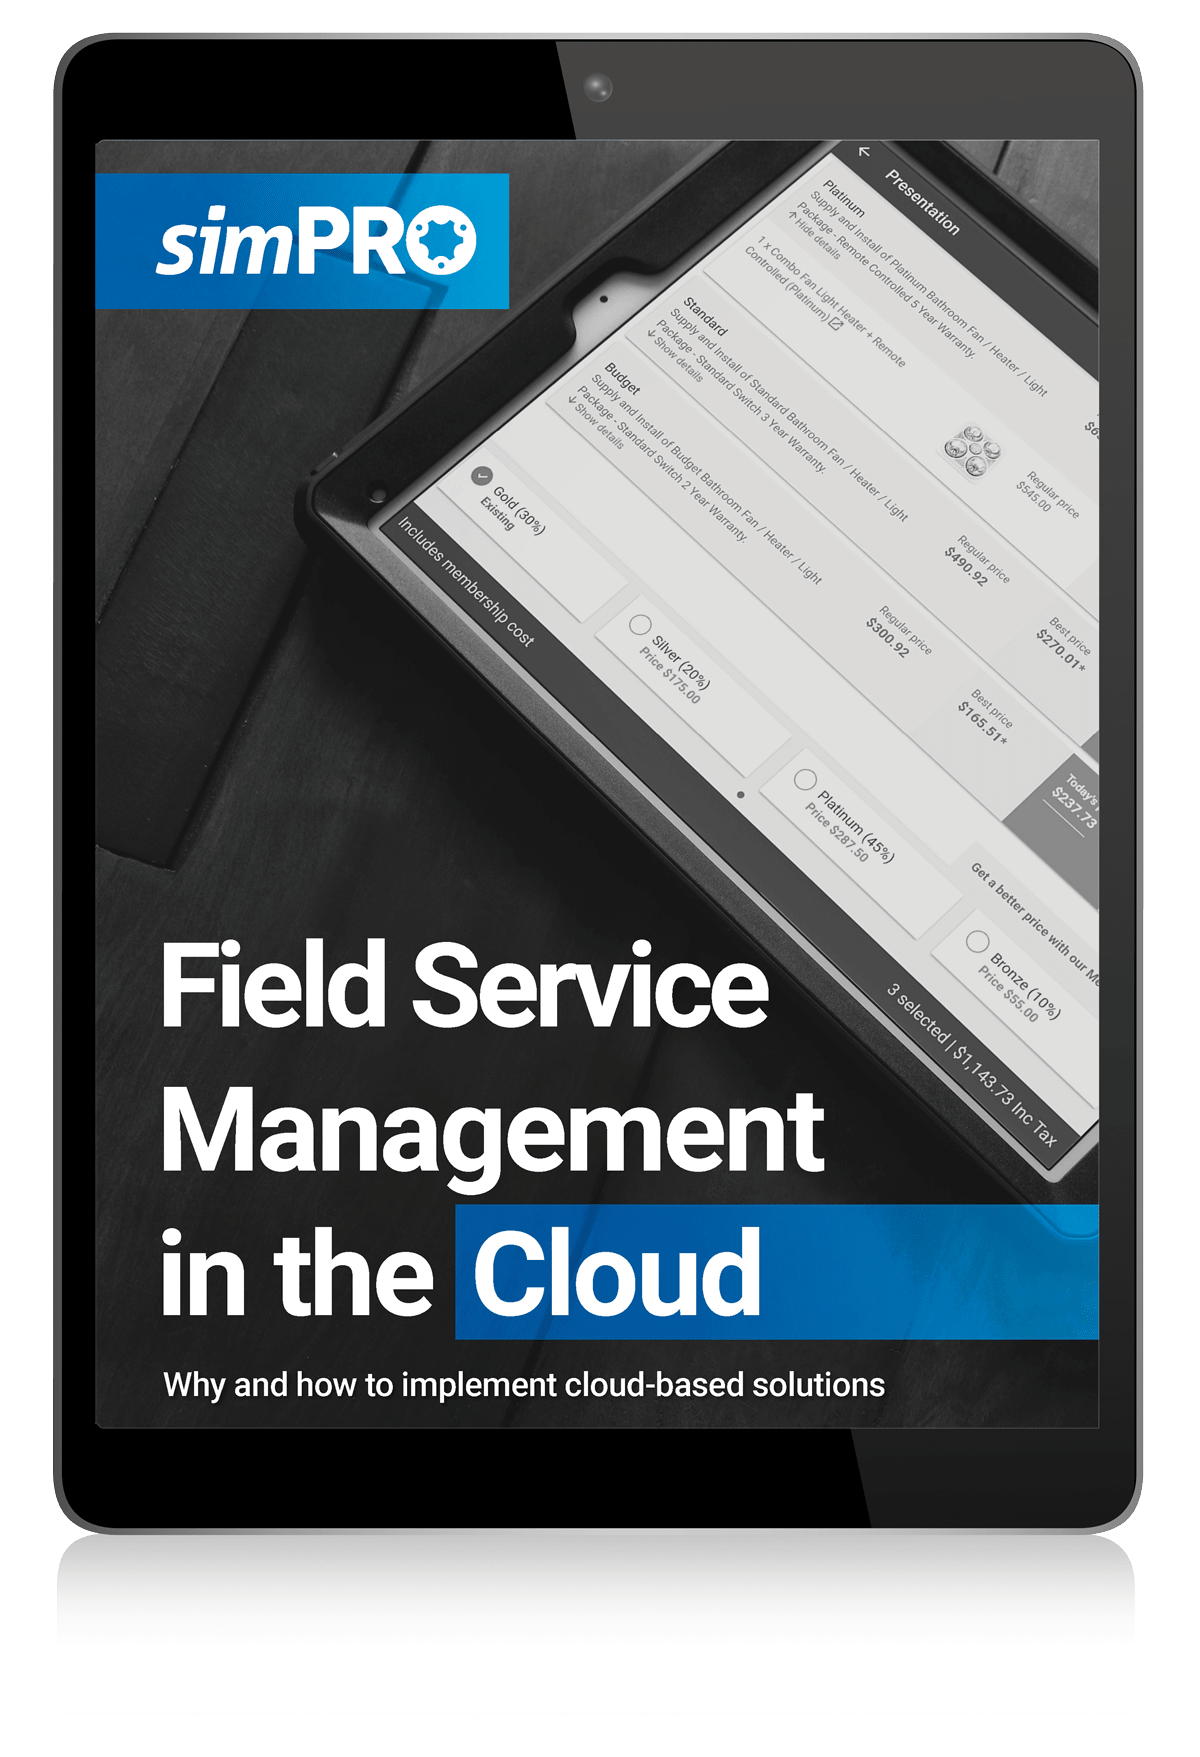 simPRO Field Service Management in the Cloud eBook on tablet device